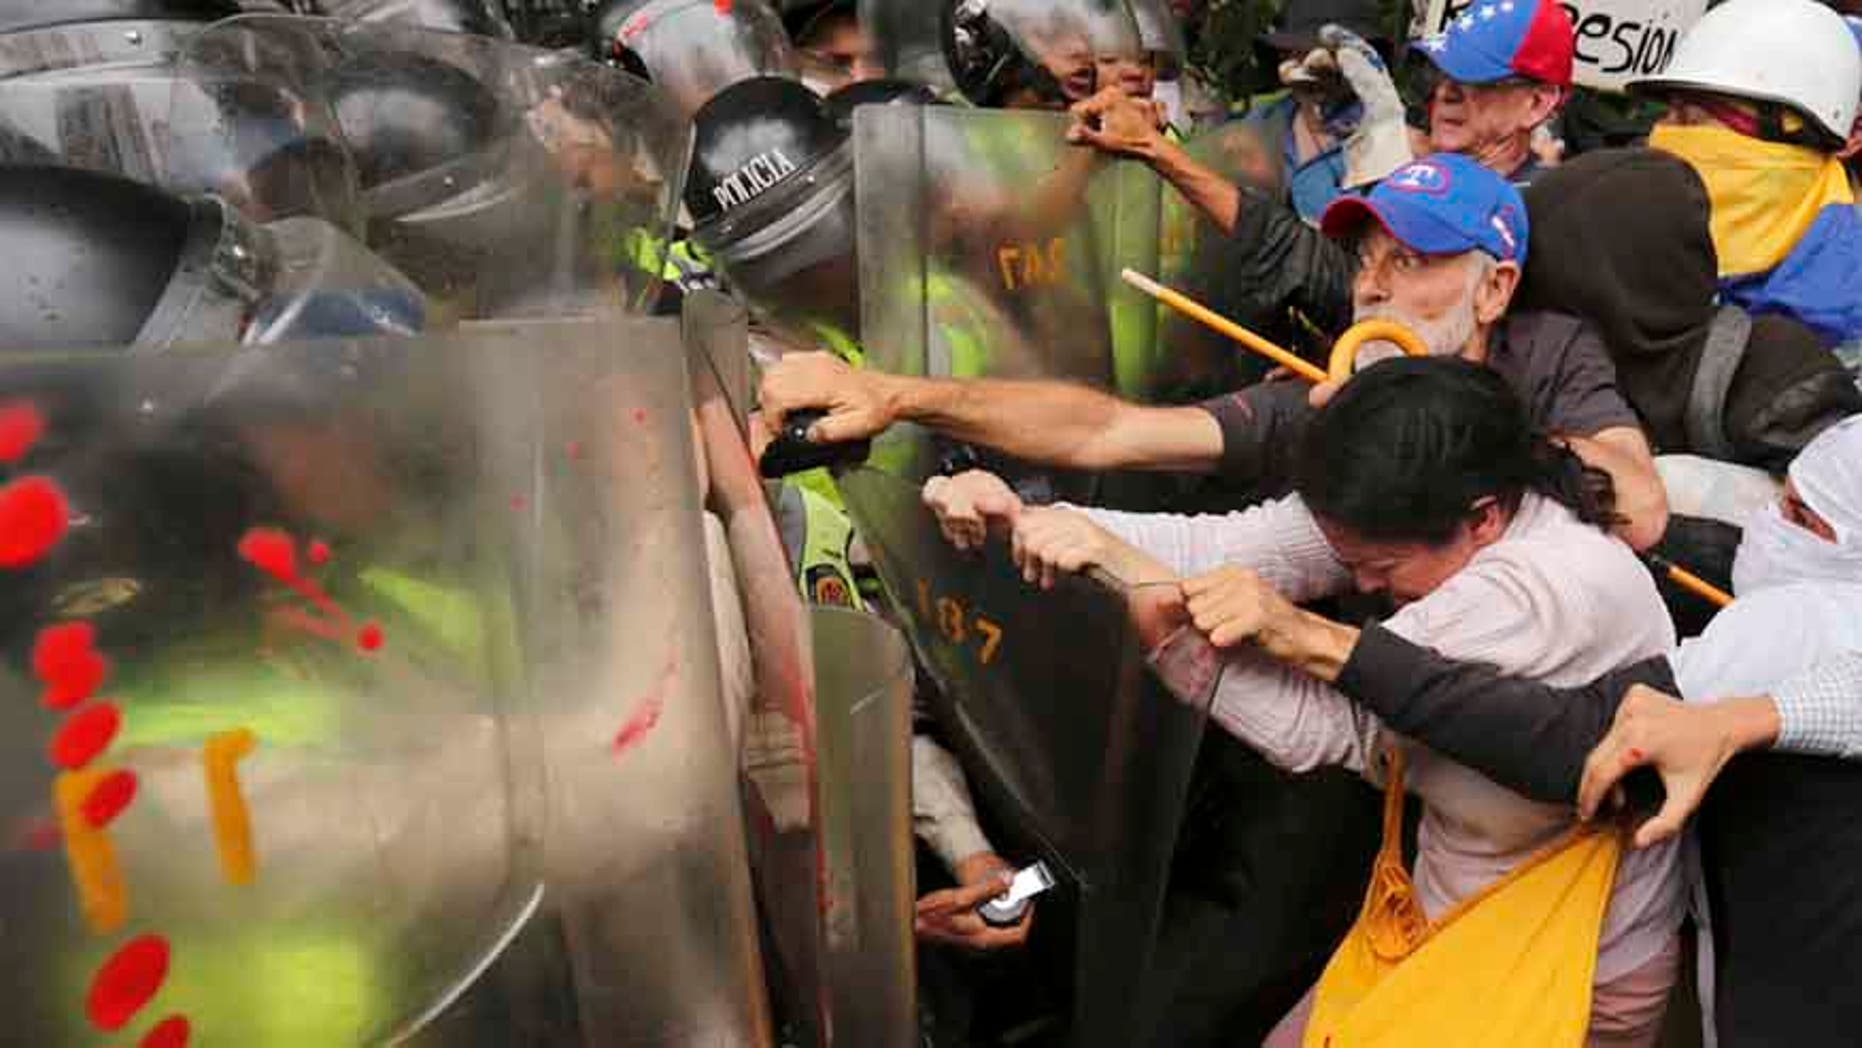 Anti-government protesters scuffle with police blocking older Venezuelans from marching to the Ombudsman's Office in protest of President Nicolas Maduro in Caracas, Venezuela, Friday, May 12, 2017.